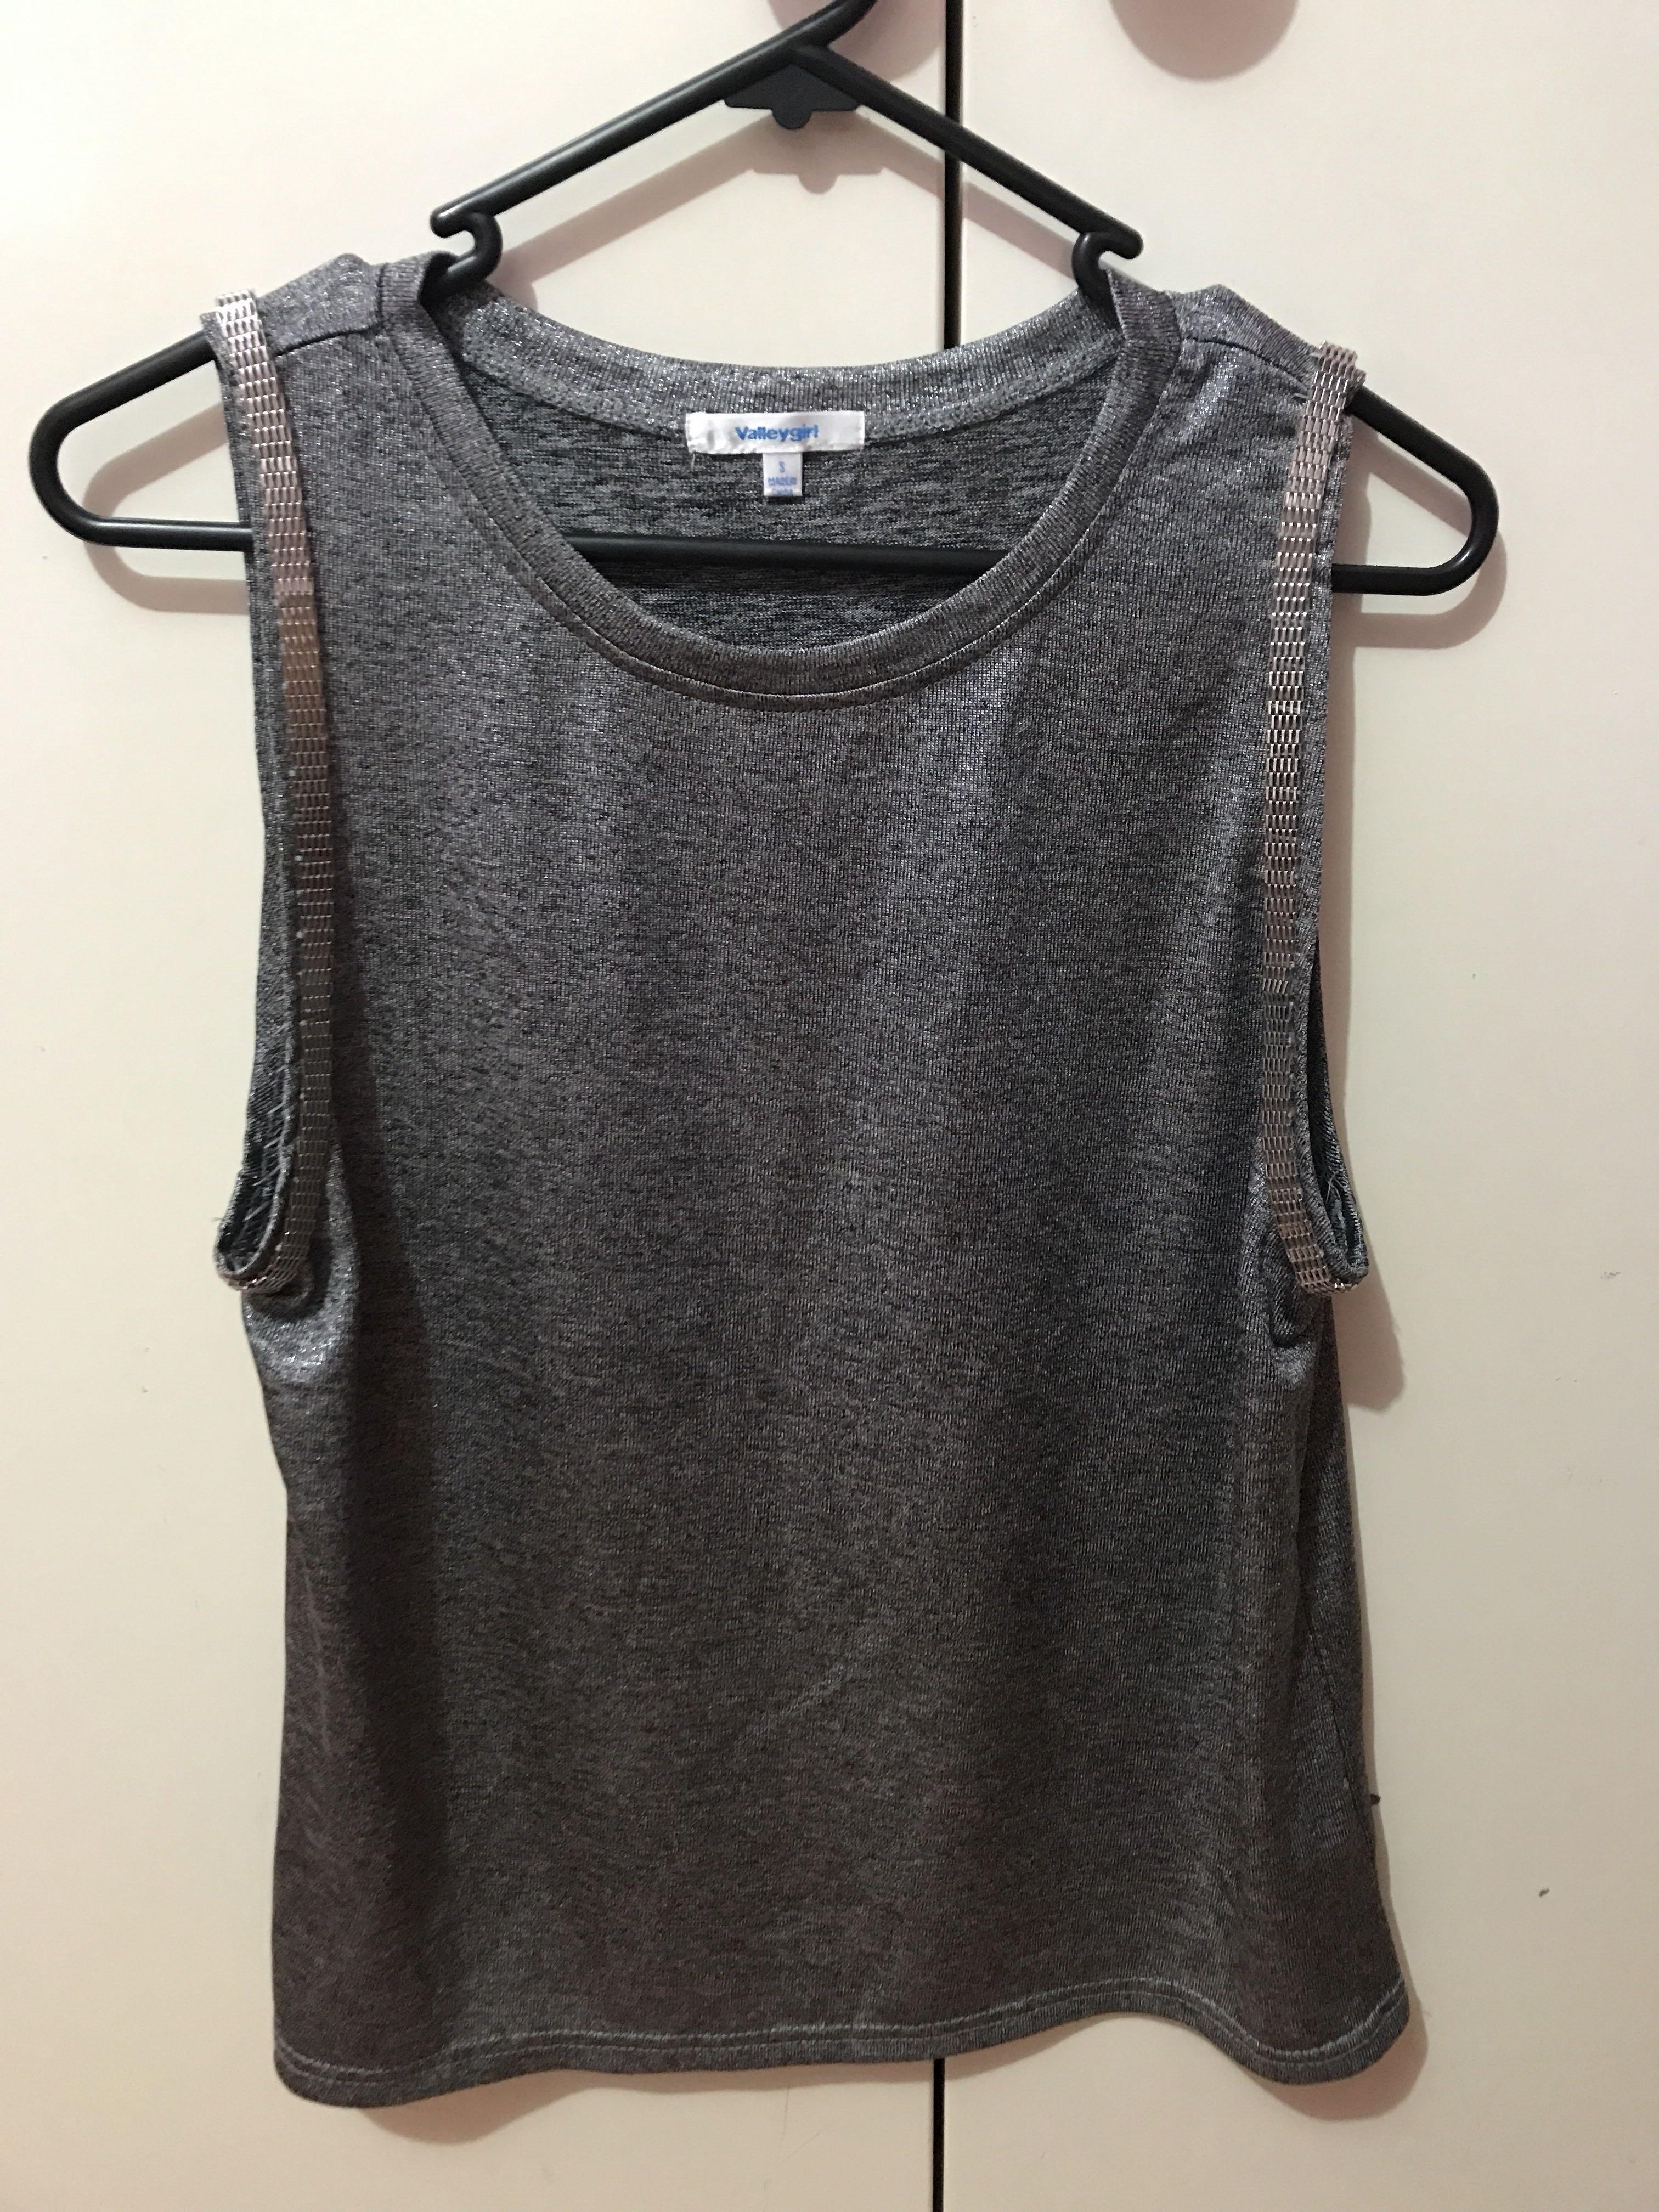 Valley girl silver tank top